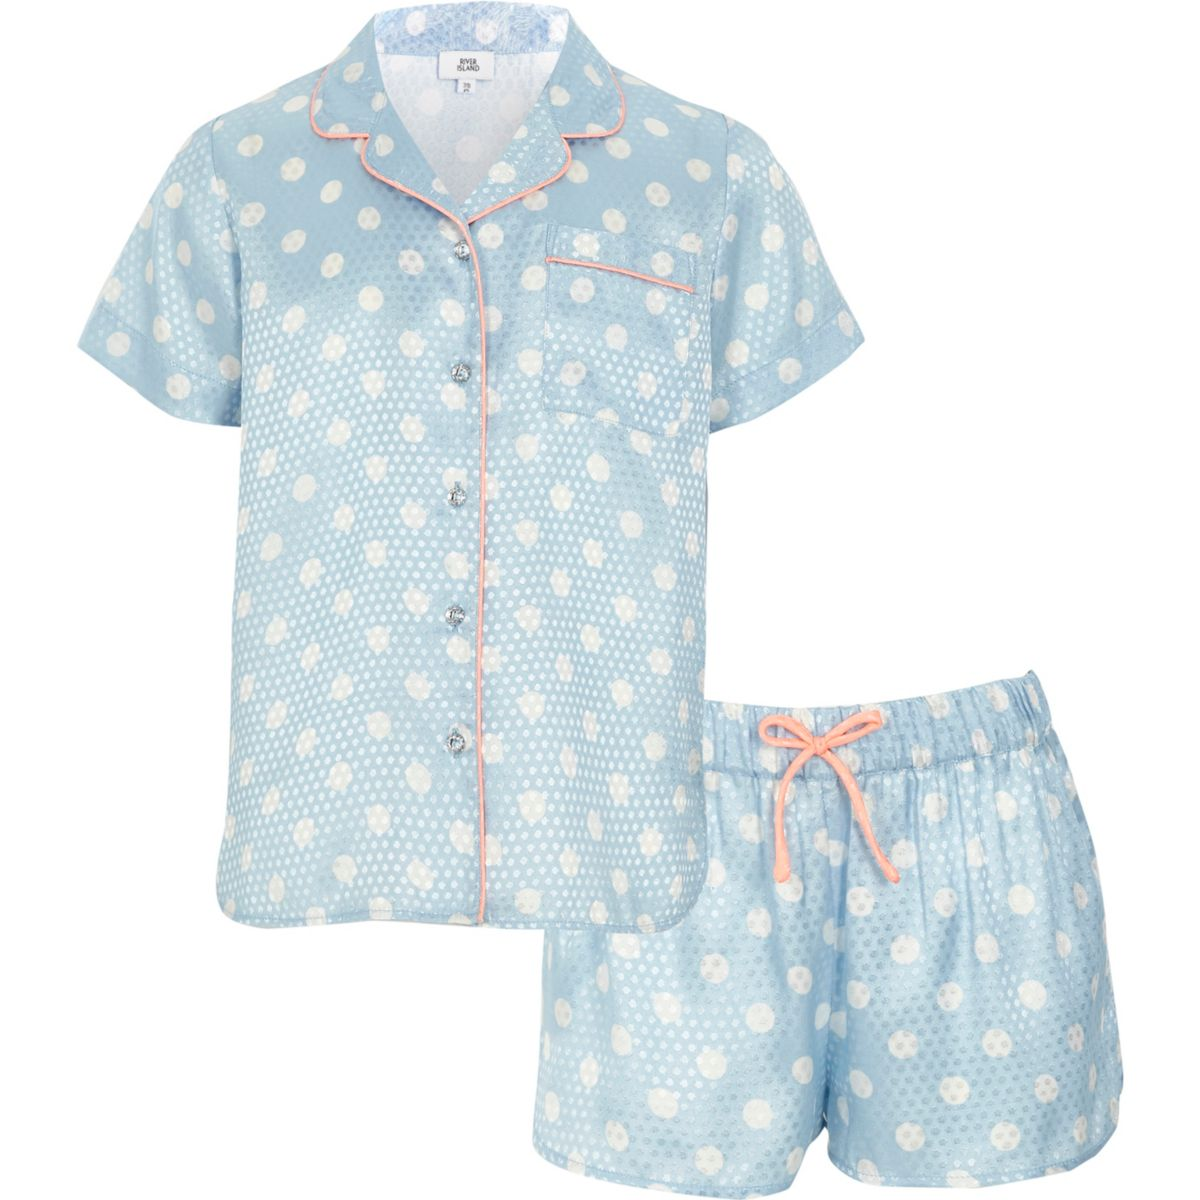 Girls blue polka dot pyjama shirt set